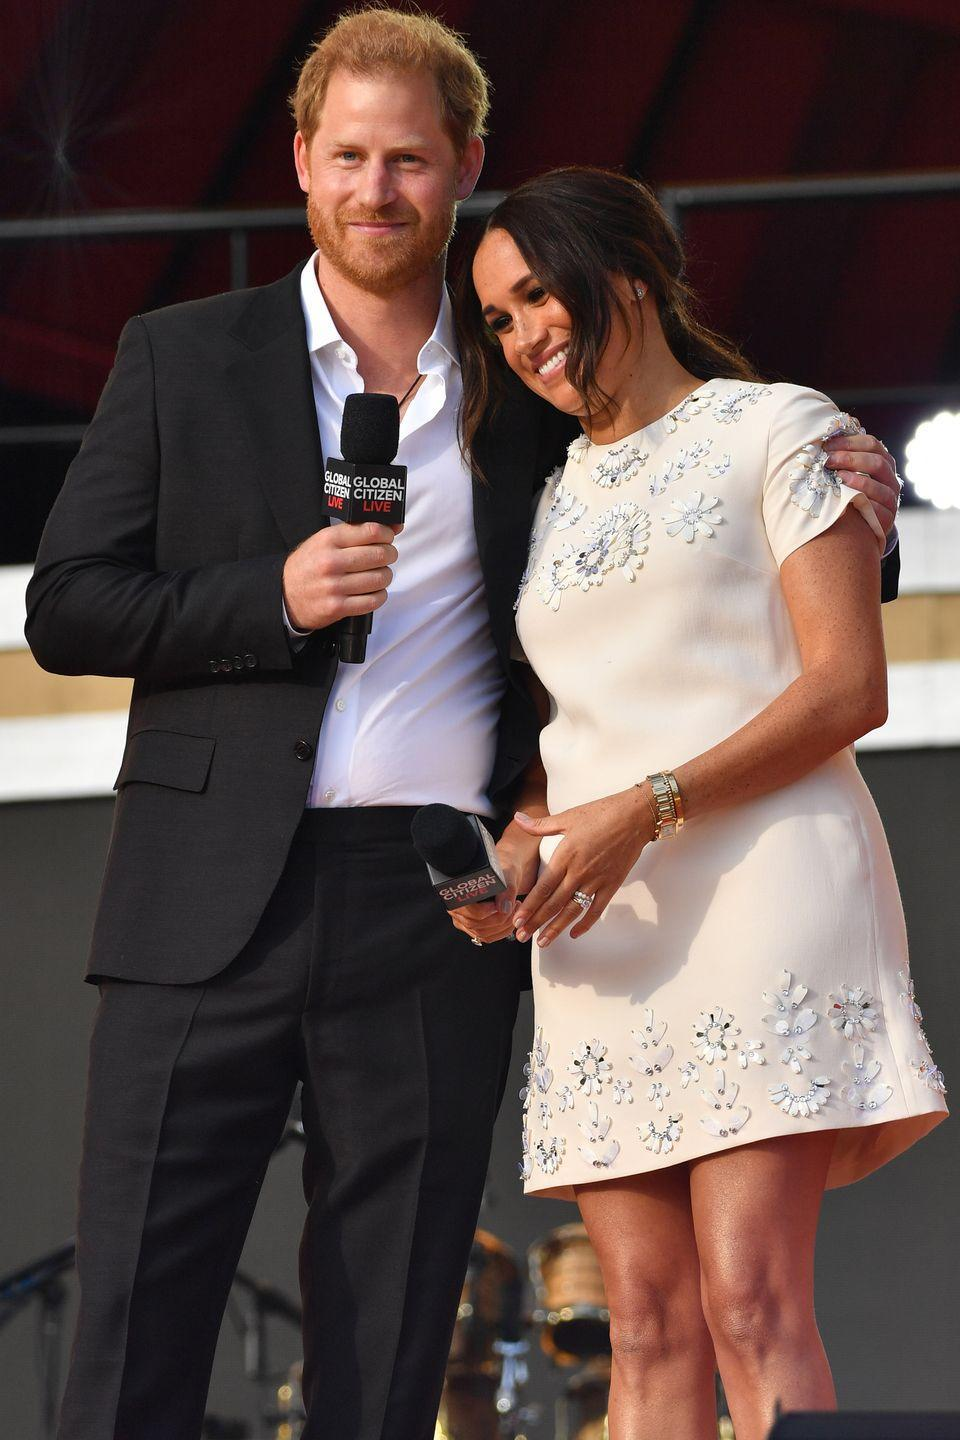 <p>The couple shared a sweet moment on stage.</p>